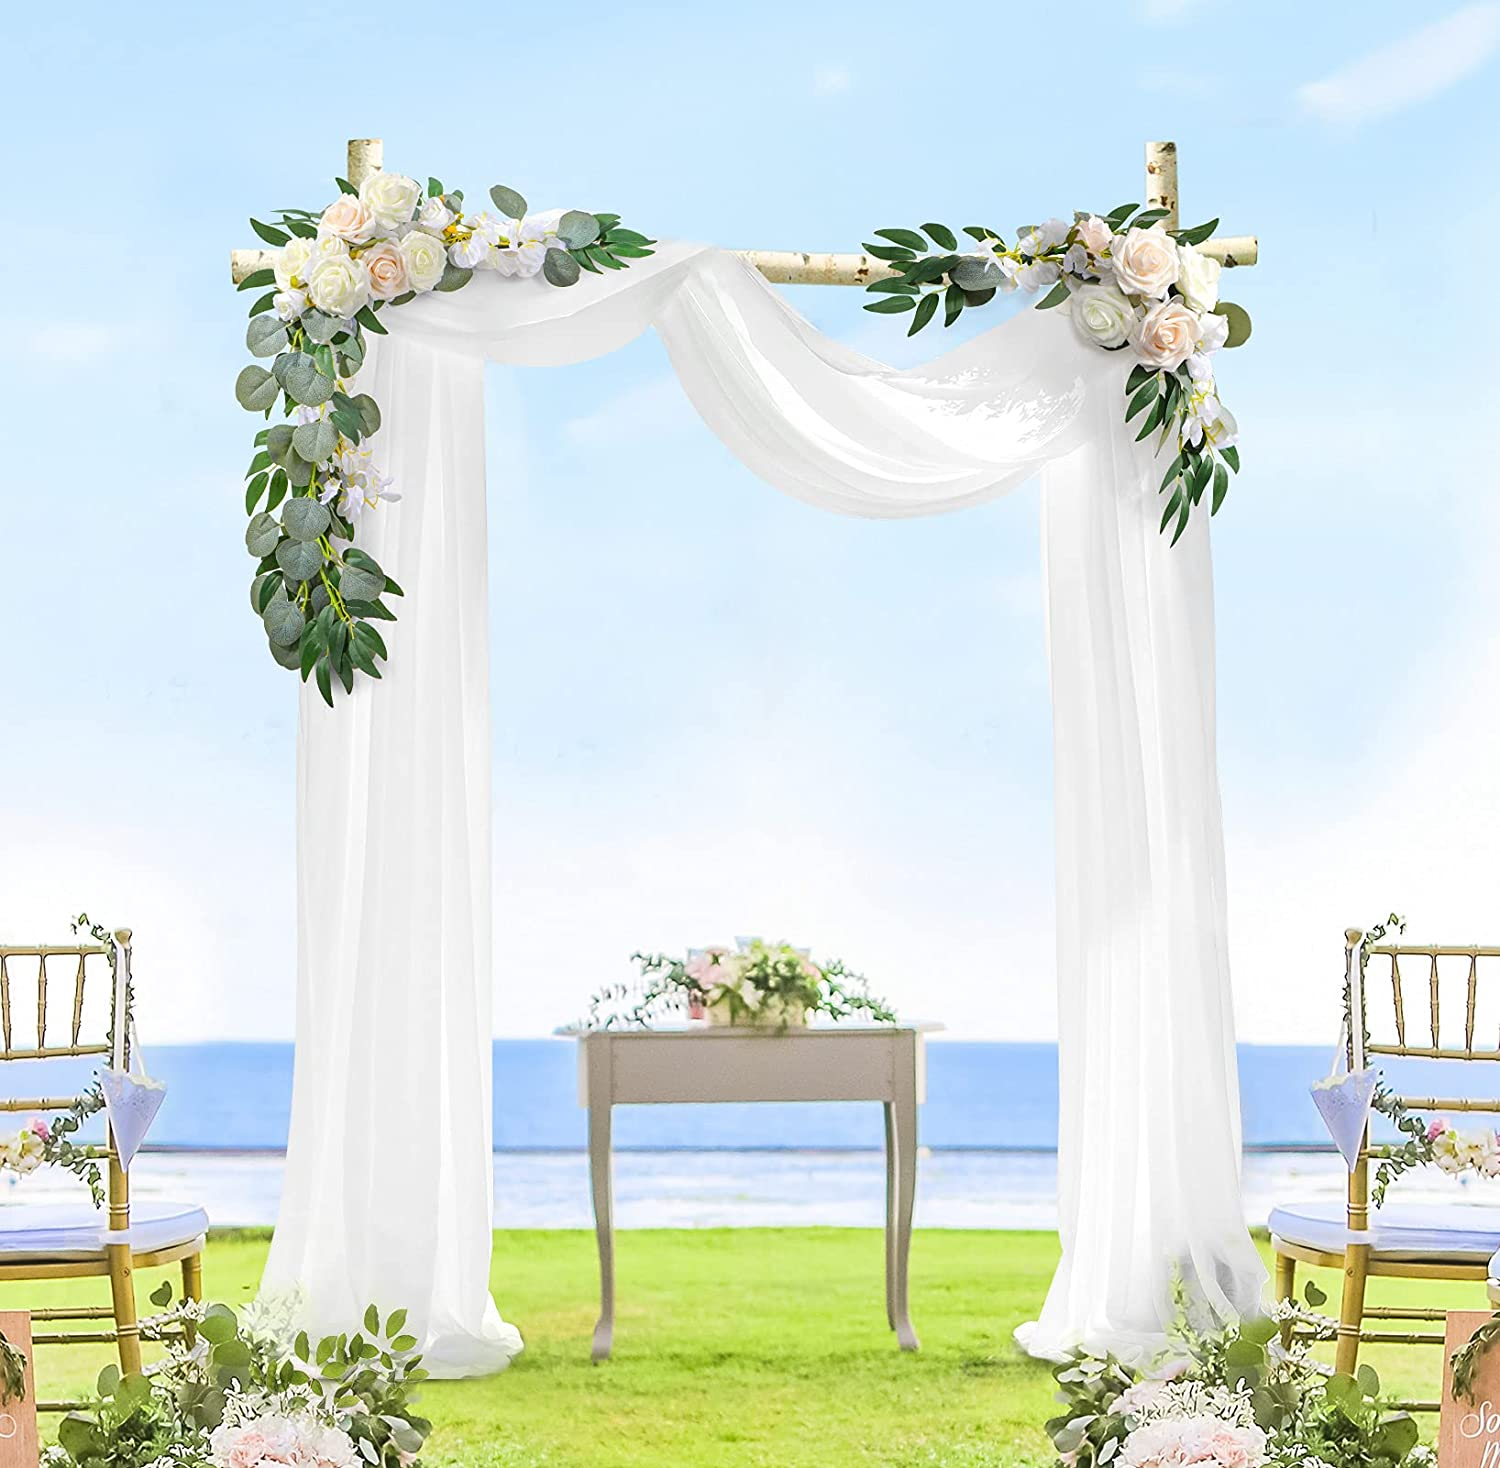 Large discharge sale Wedding Arch Flowers Decorations Pack Champagne 2 New products world's highest quality popular Rust Ivory of